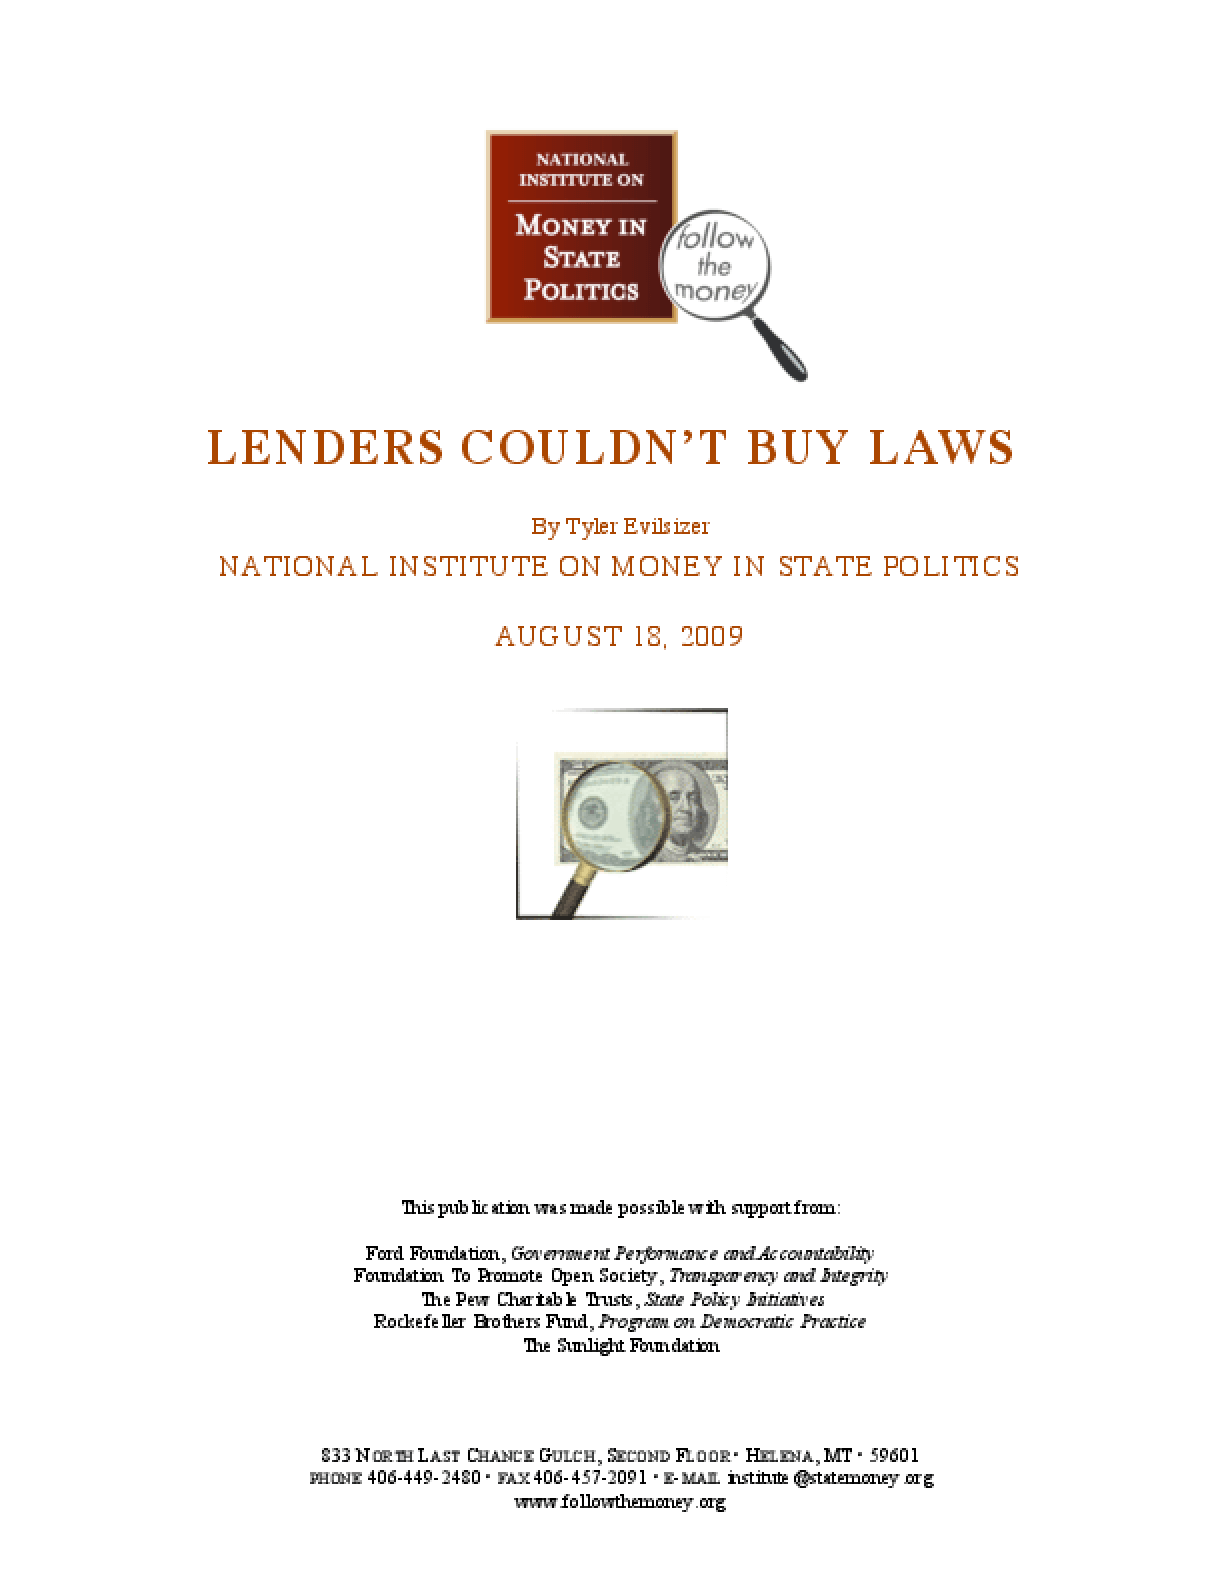 Lenders Couldn't Buy Laws